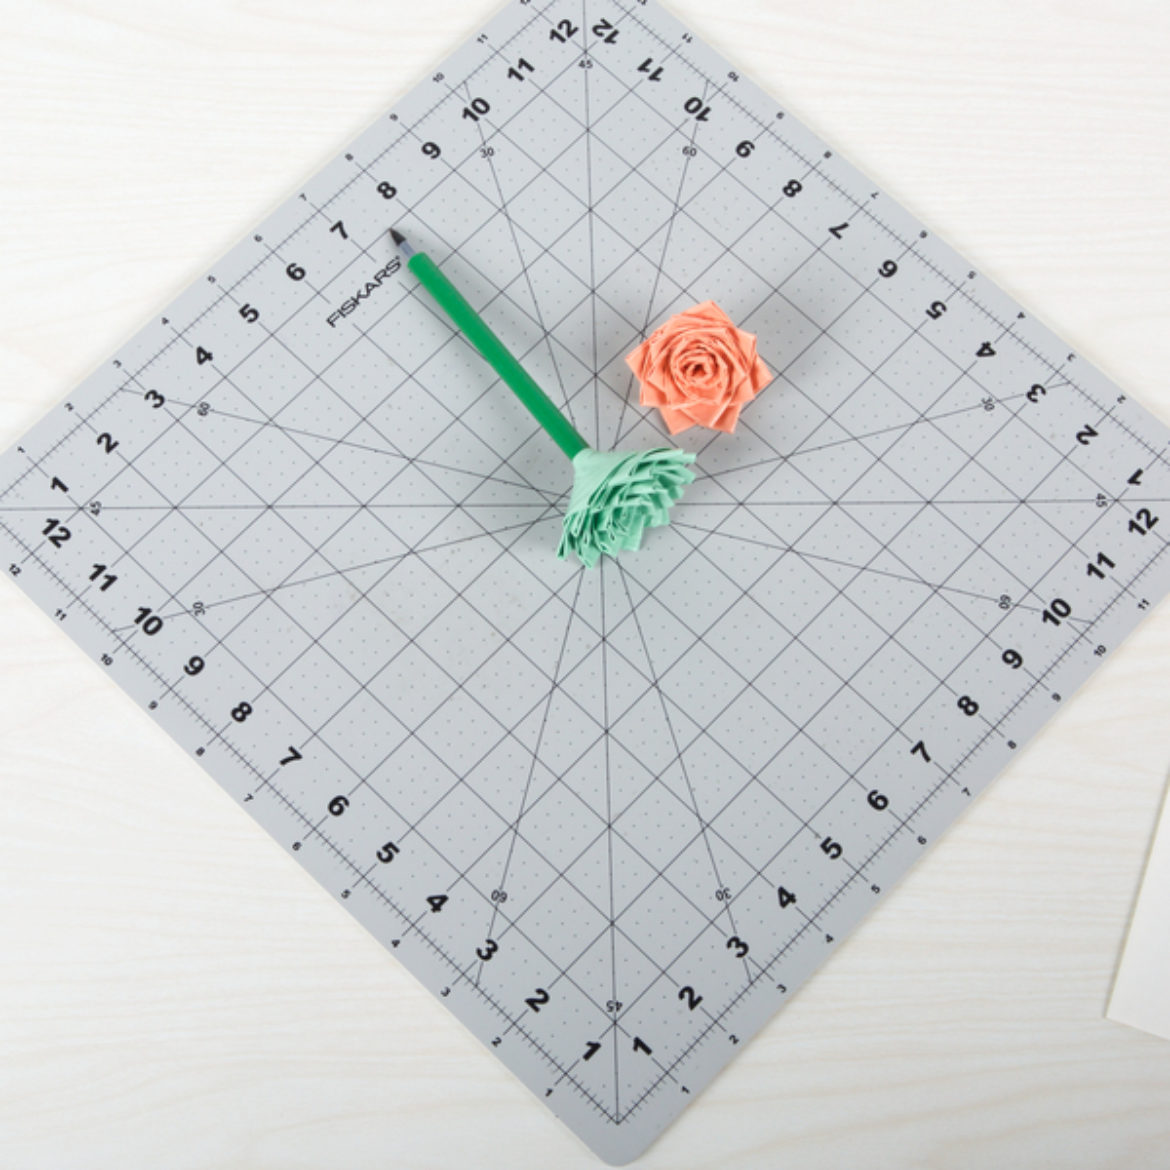 One green flower topping a pen and a pink flower placed on a crafting board